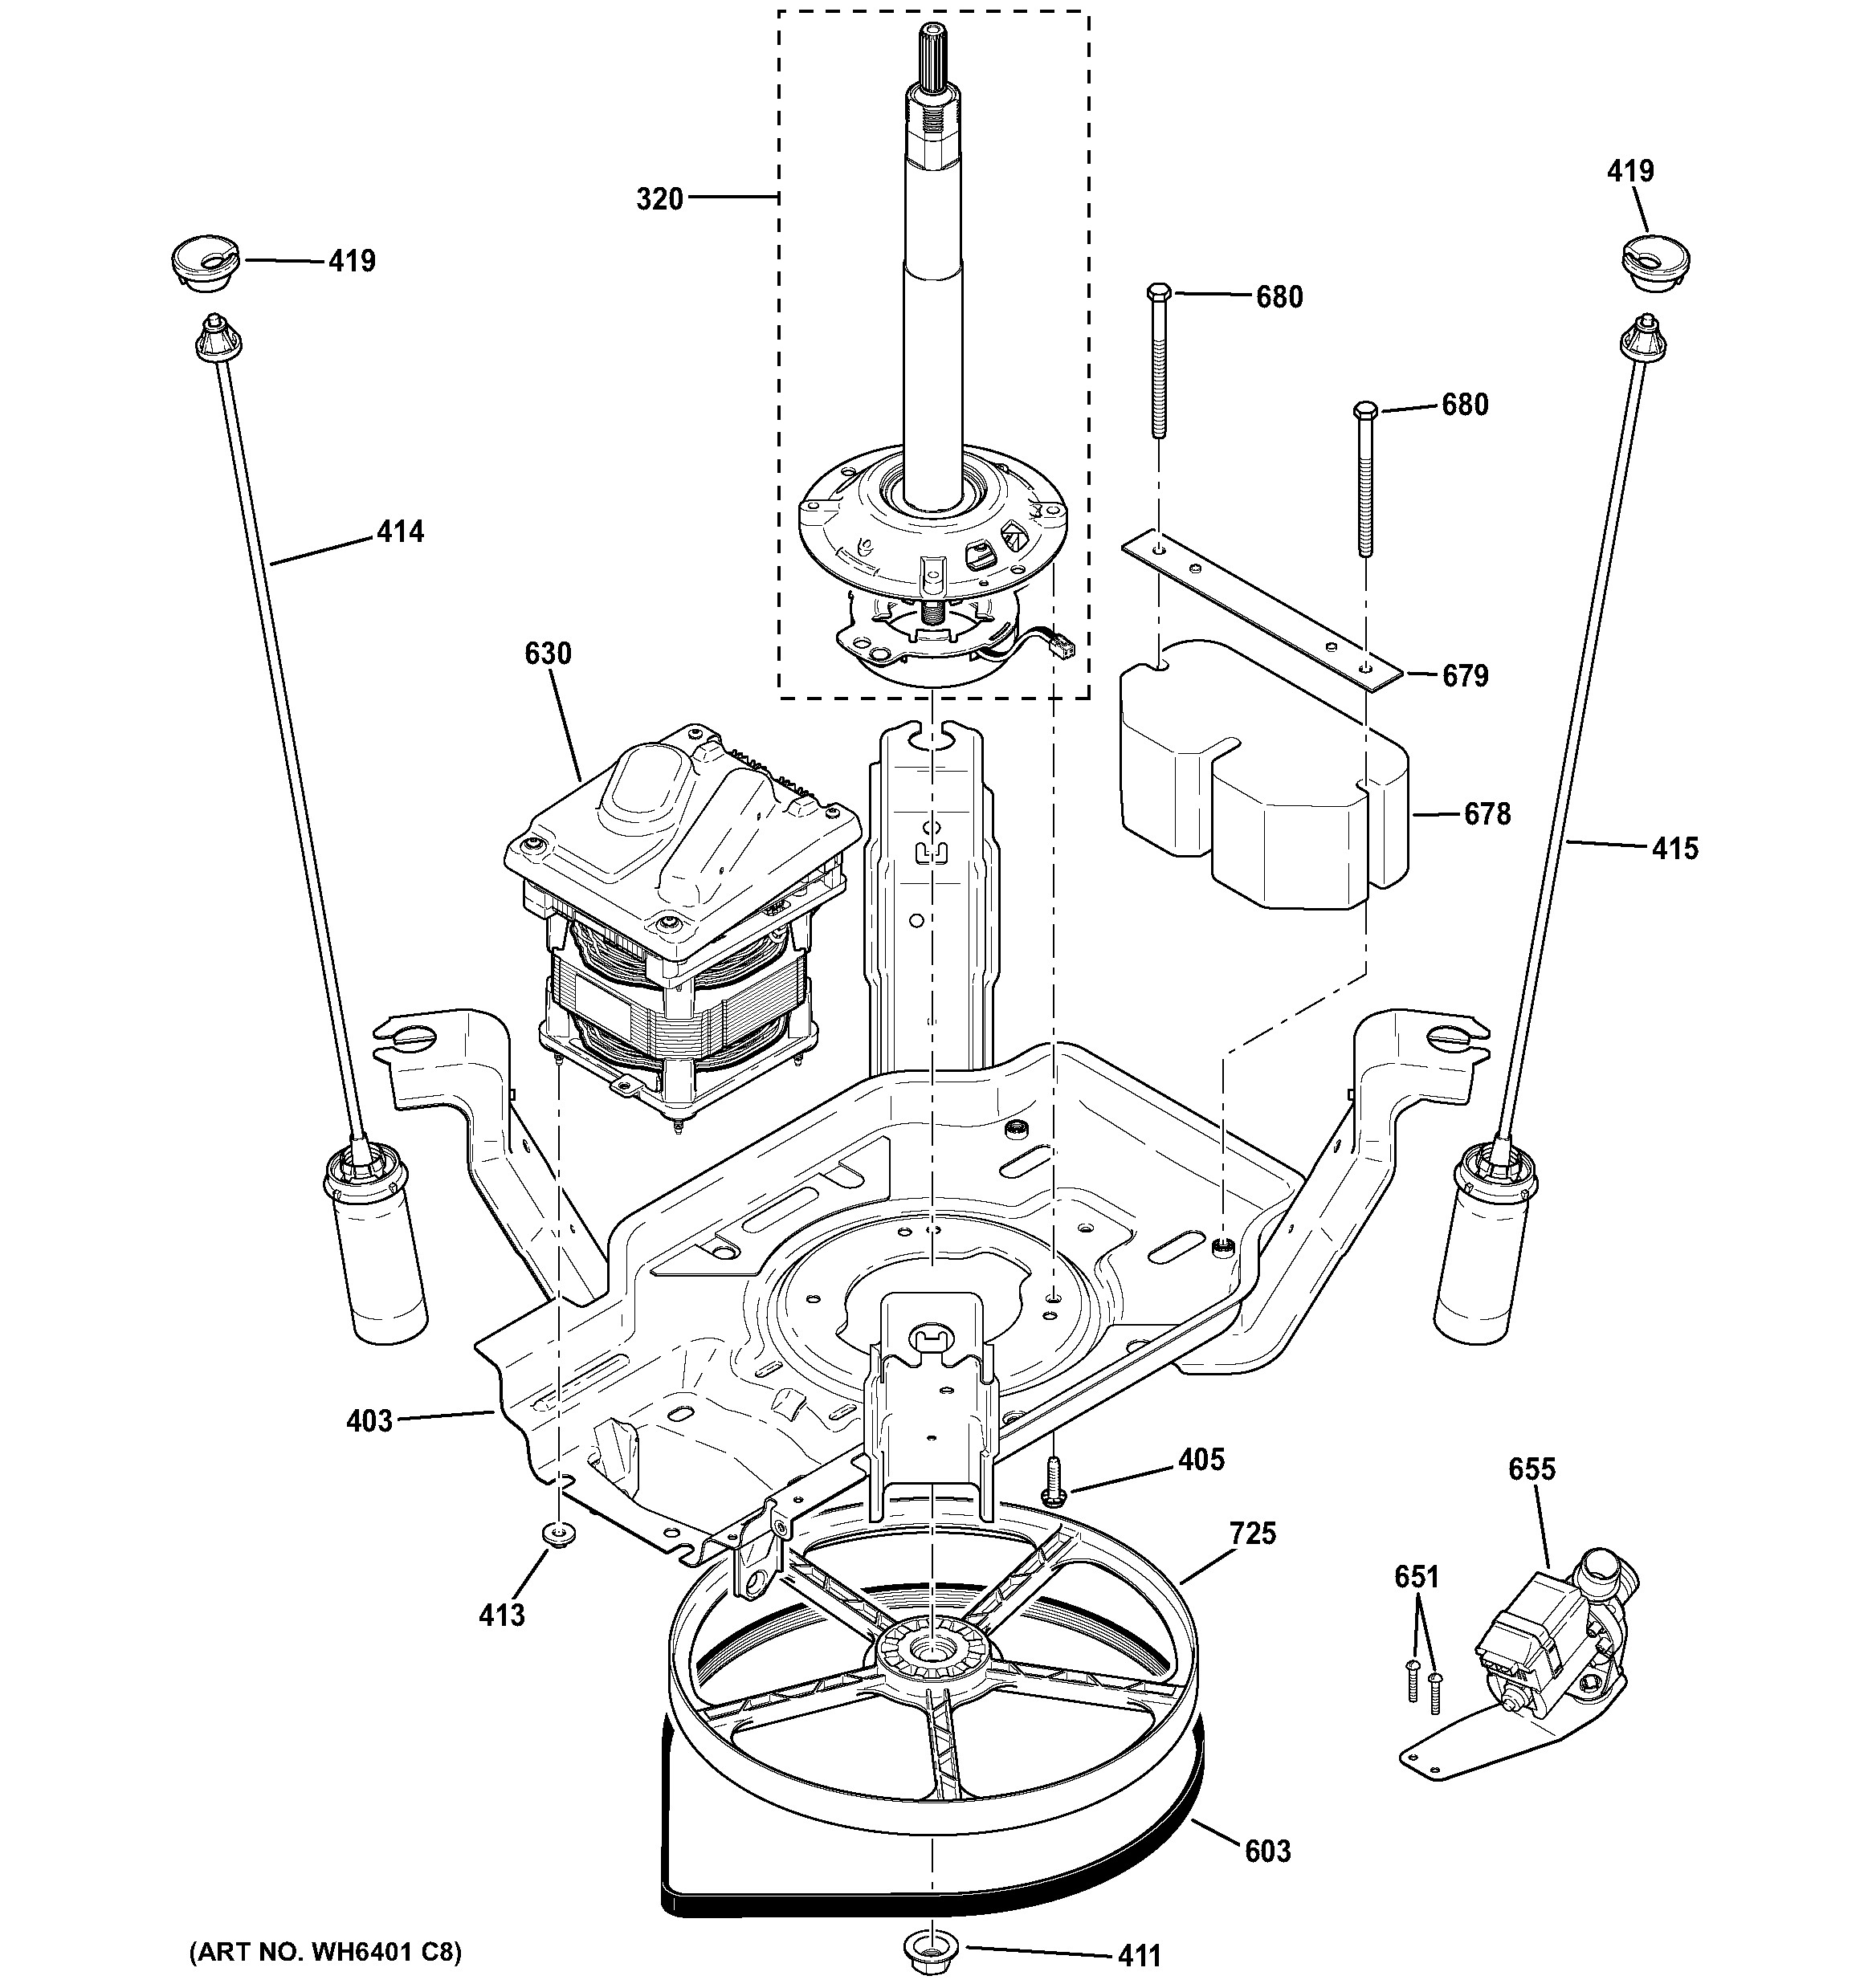 Suspension System Diagram 1997 Toyota Camry Engine Replacing Related Post